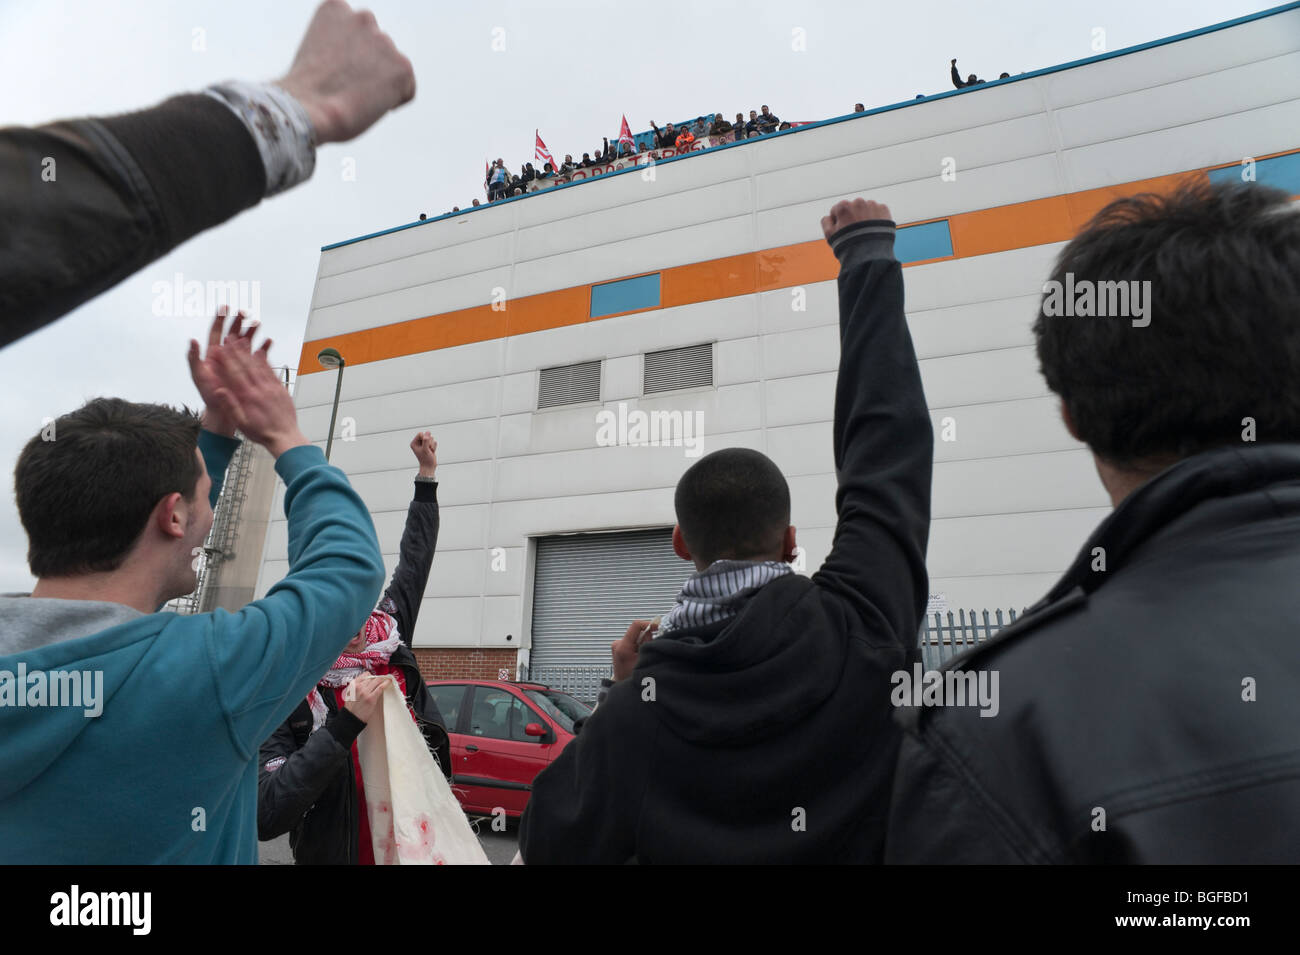 Demonstrators raise clenched fists to show solidarity with sacked workers as court order ends occupation of Visteon Stock Photo